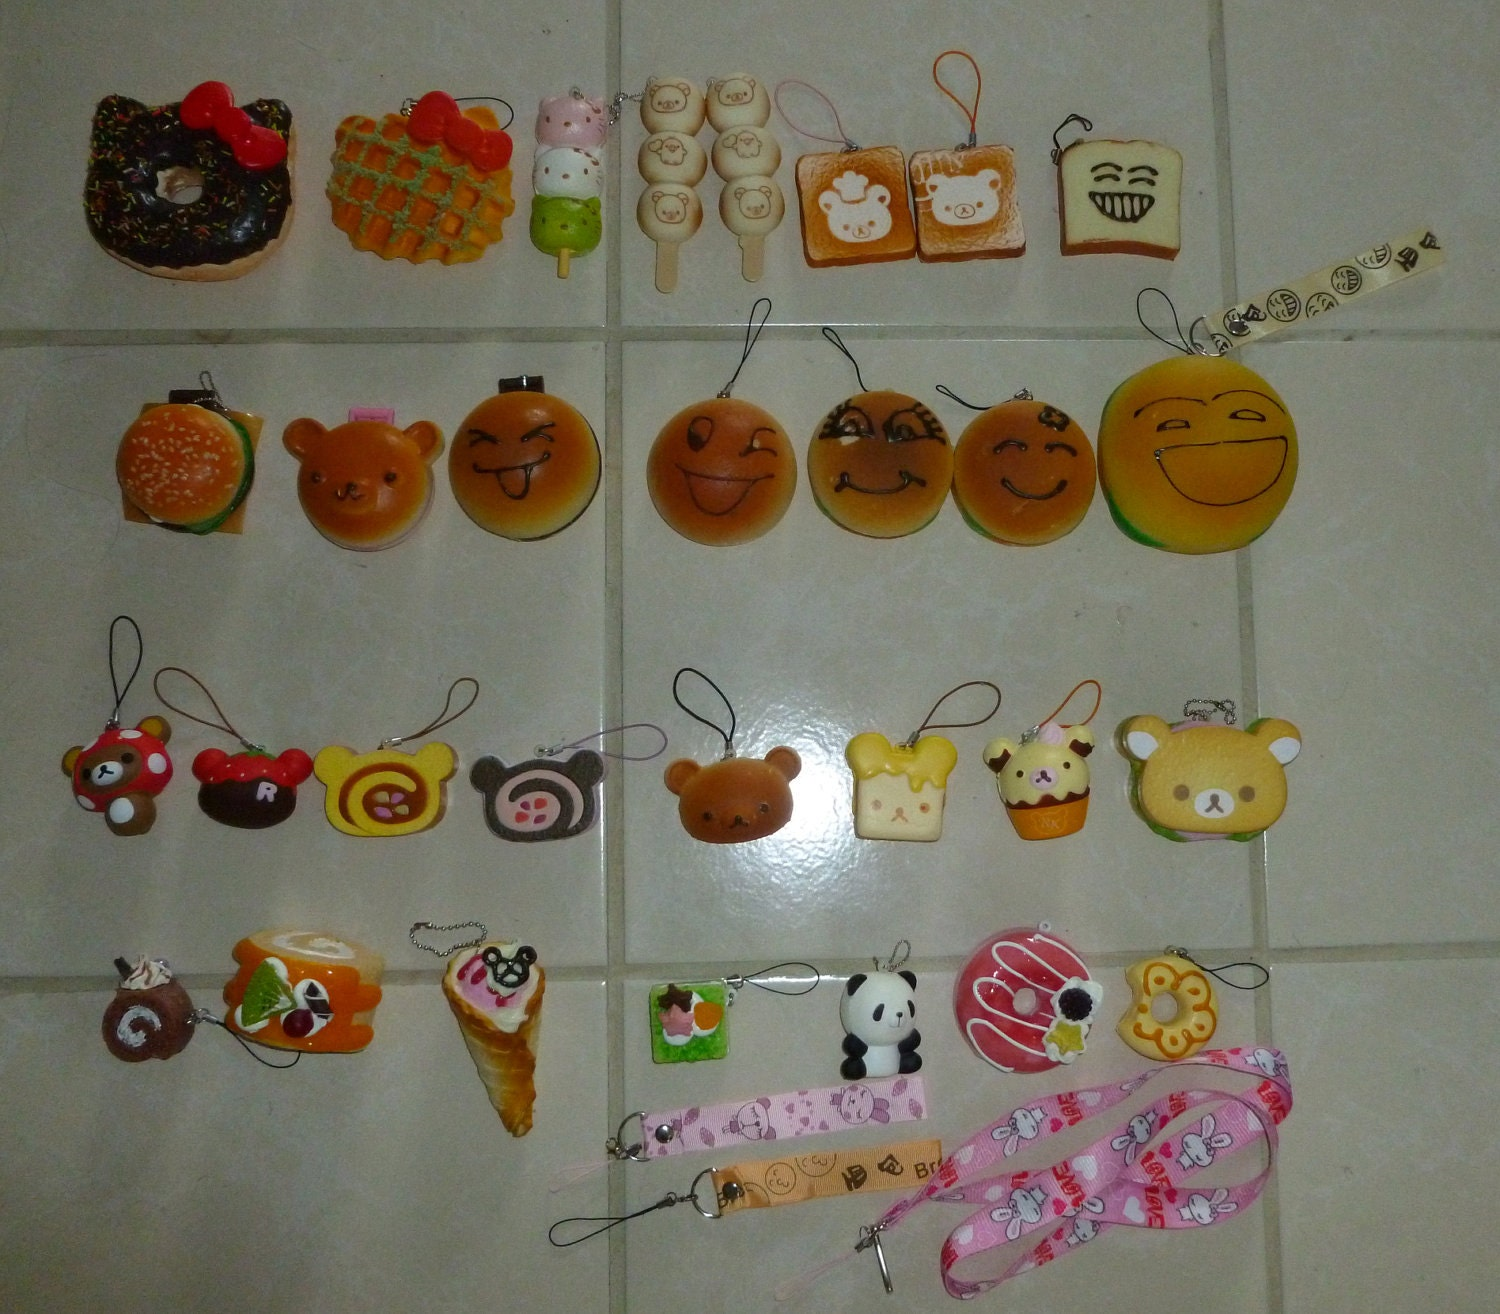 Squishy Collection Blog : Image Gallery squishy collection